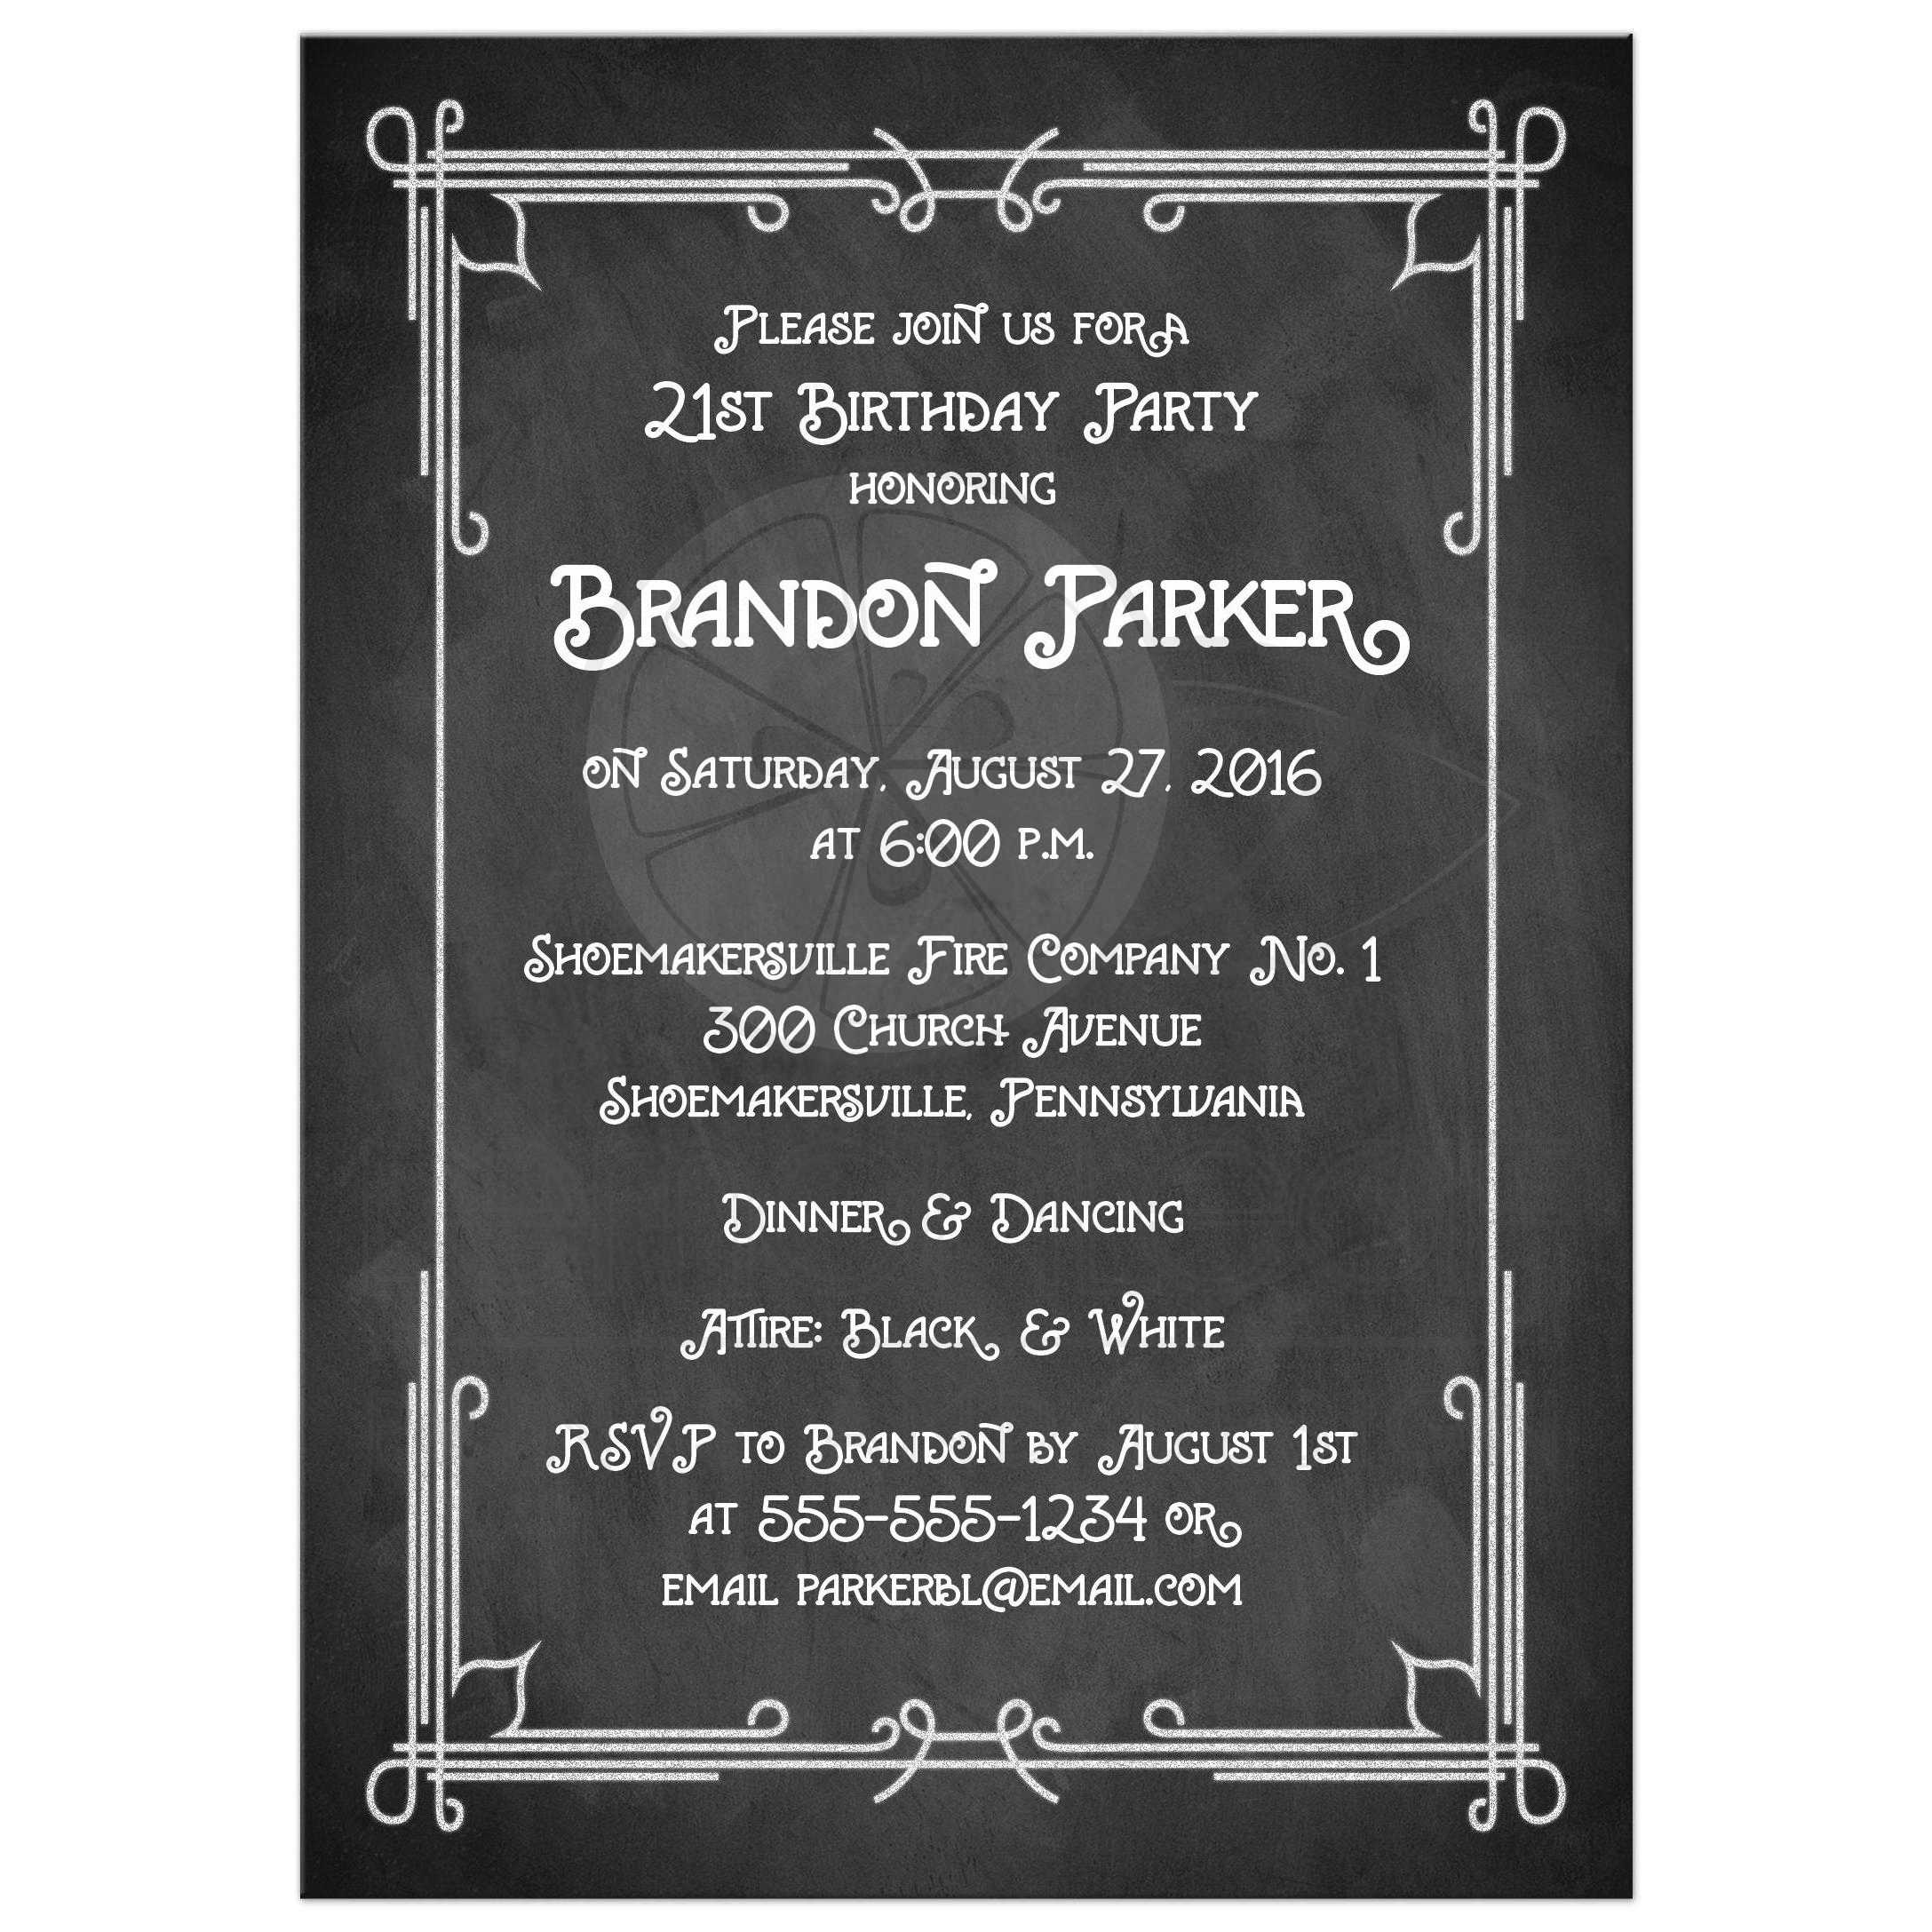 Great Black And White Chalkboard Art Deco Scrolls 21st Birthday Party Invitation With Photo Template